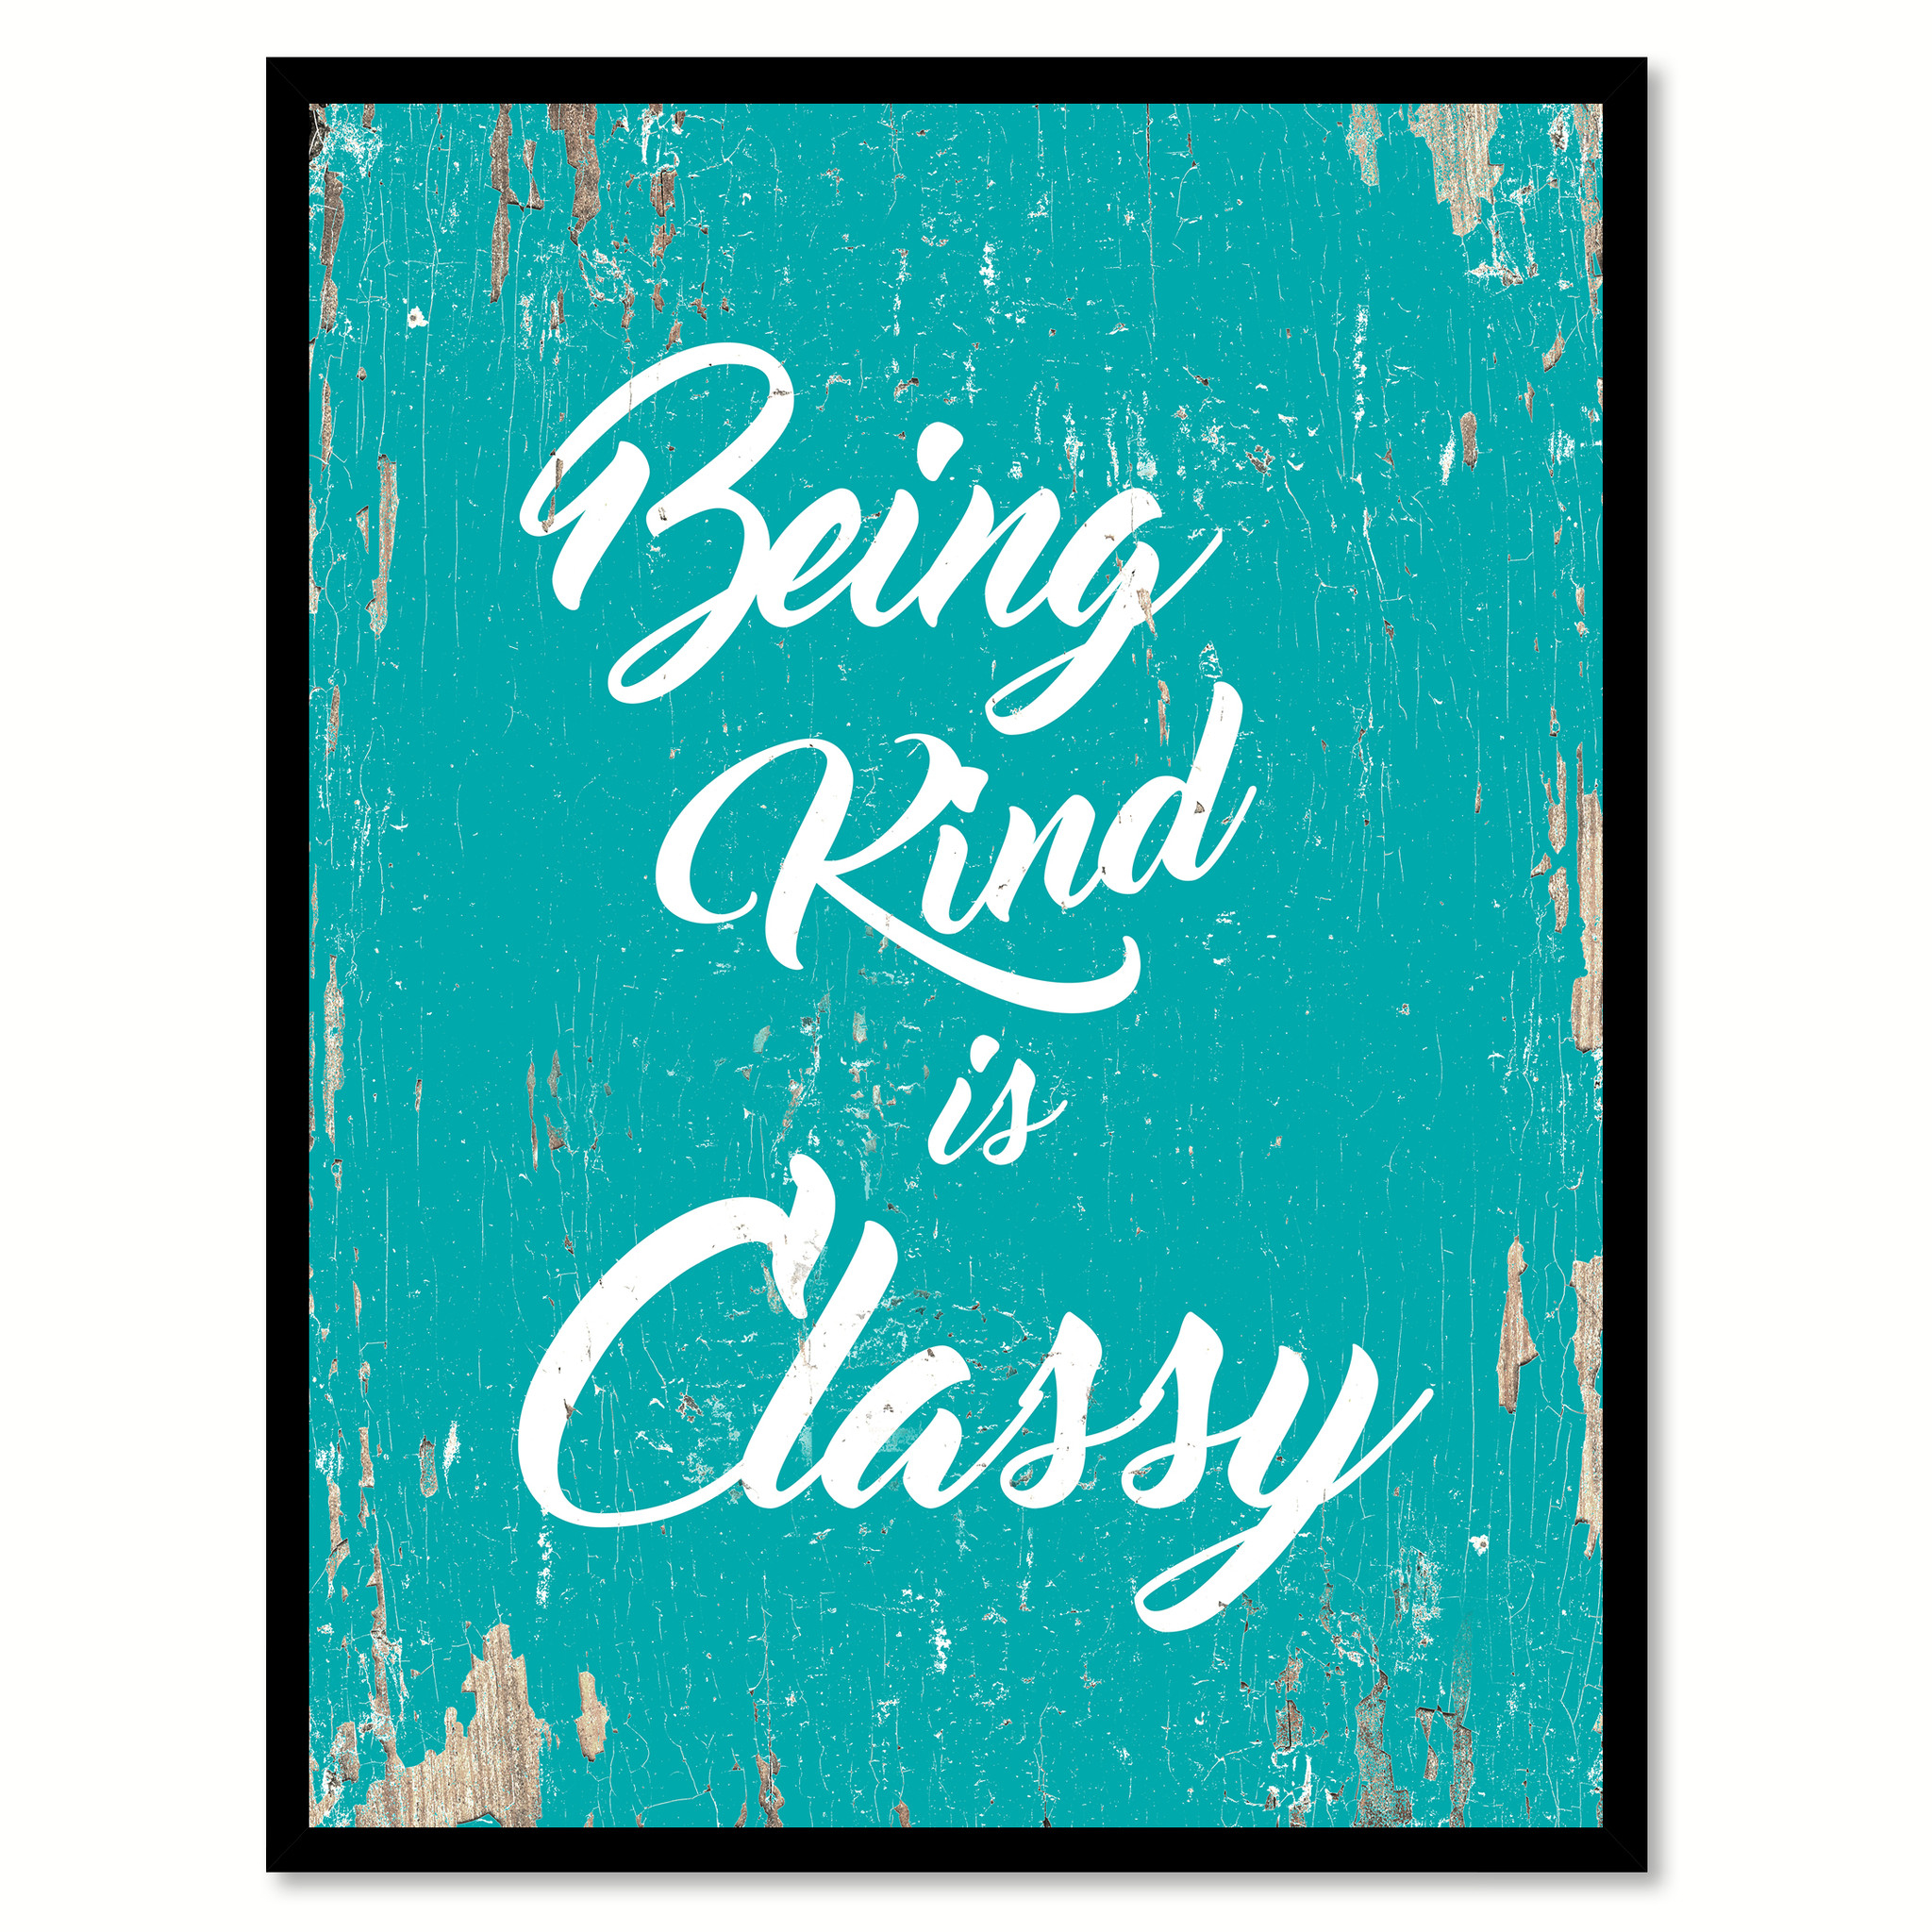 "Being Kind Is Classy Motivation Quote Saying Canvas Print with Picture Frame Gift Ideas Home Decor Wall Art 111463 - 7""x9\"""